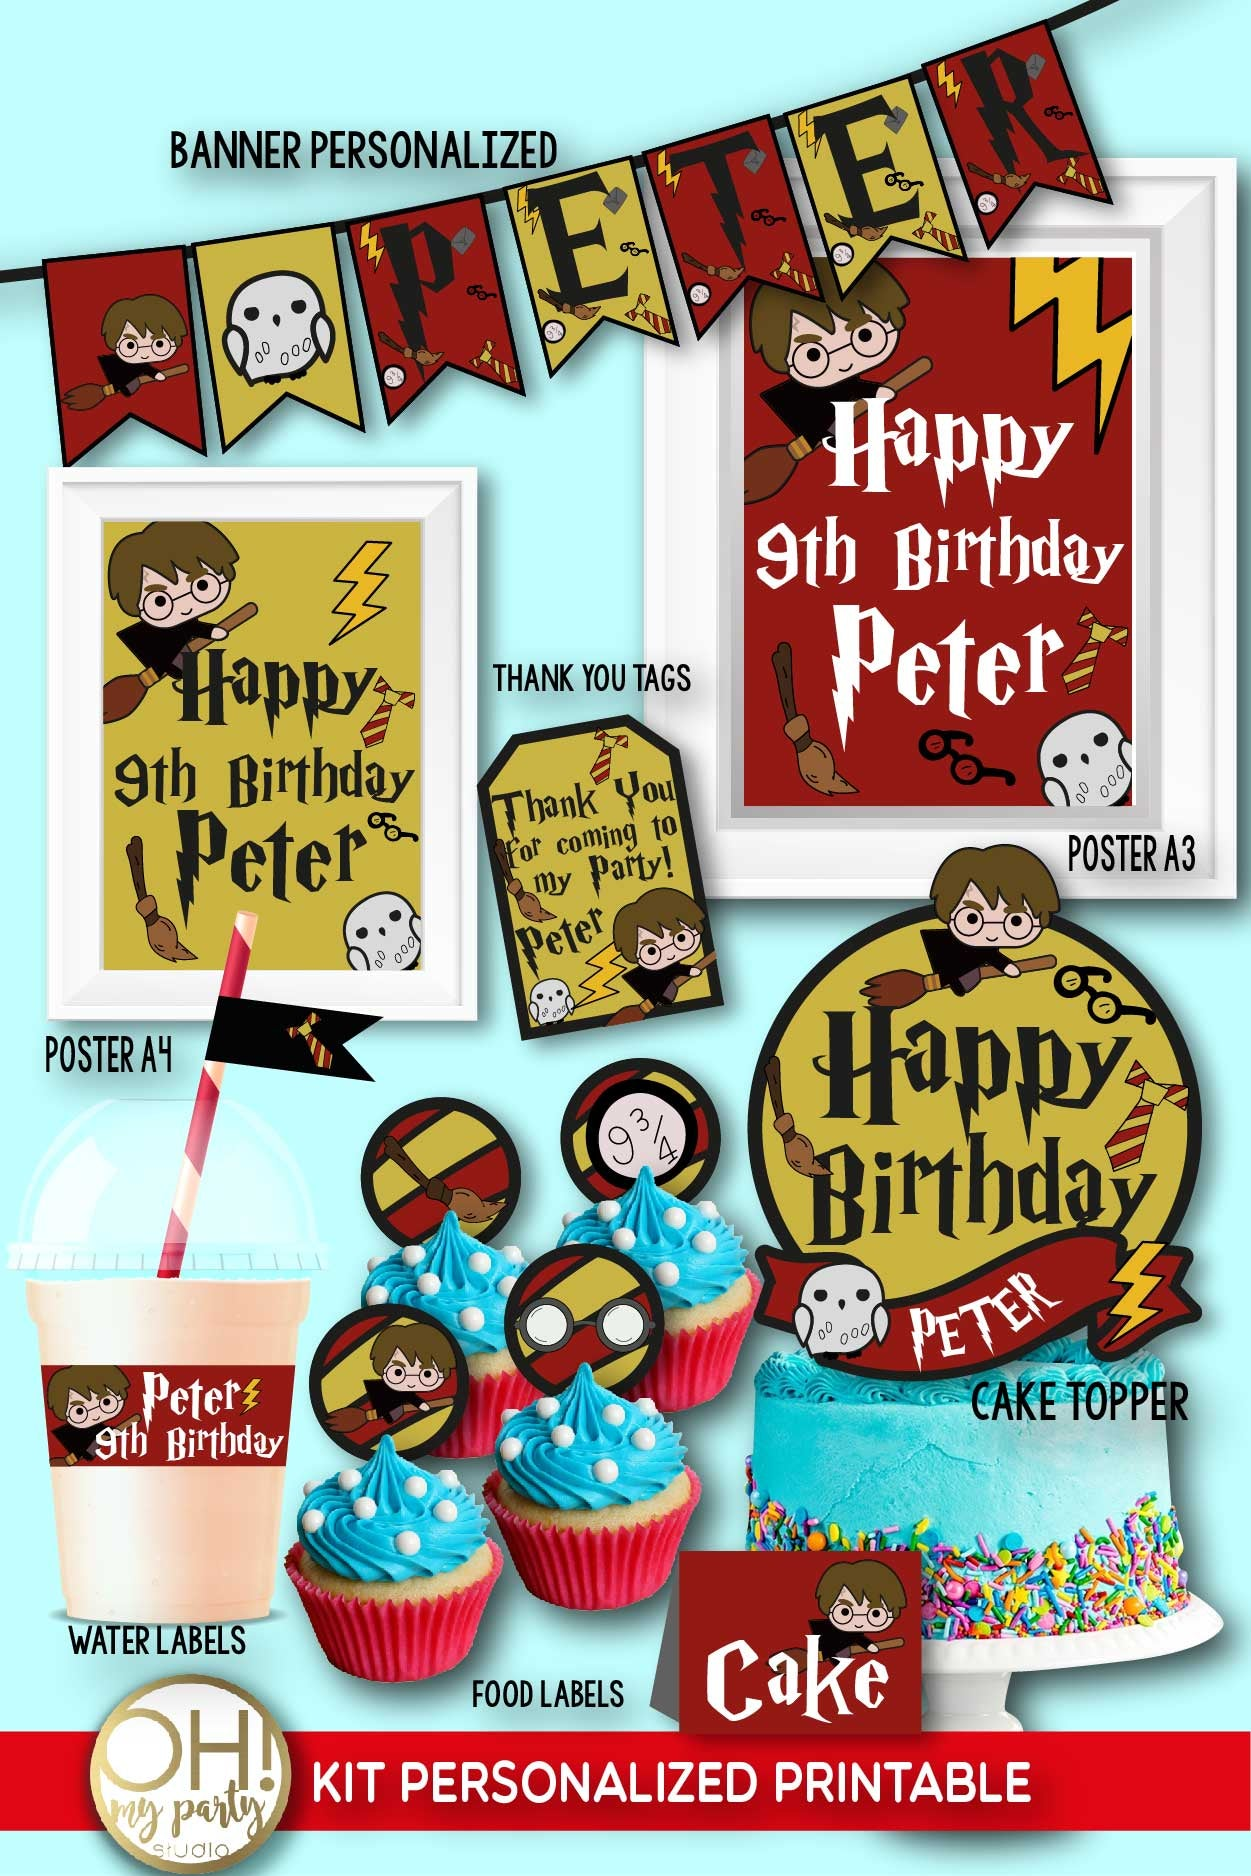 HARRY POTTER PARTY IDEAS, HARRY POTTER PARTY DECORATIONS, HARRY POTTER PARTY PRINTABLES, HARRY POTTER PARTY, HARRY POTTER BIRTHDAY, HARRY POTTER DECORATIONS, HARRY POTTER CAKE, HARRY POTTER BANNER, HARRY POTTER CENTERPIECES, HARRY POTTER THANK YOU TAGS, HARRY POTTER PARTY SUPPLIES, HARRY POTER BIRTHDAY, HARRY POTER PARTY, HARRY POTTER PARTY PRINTABLES